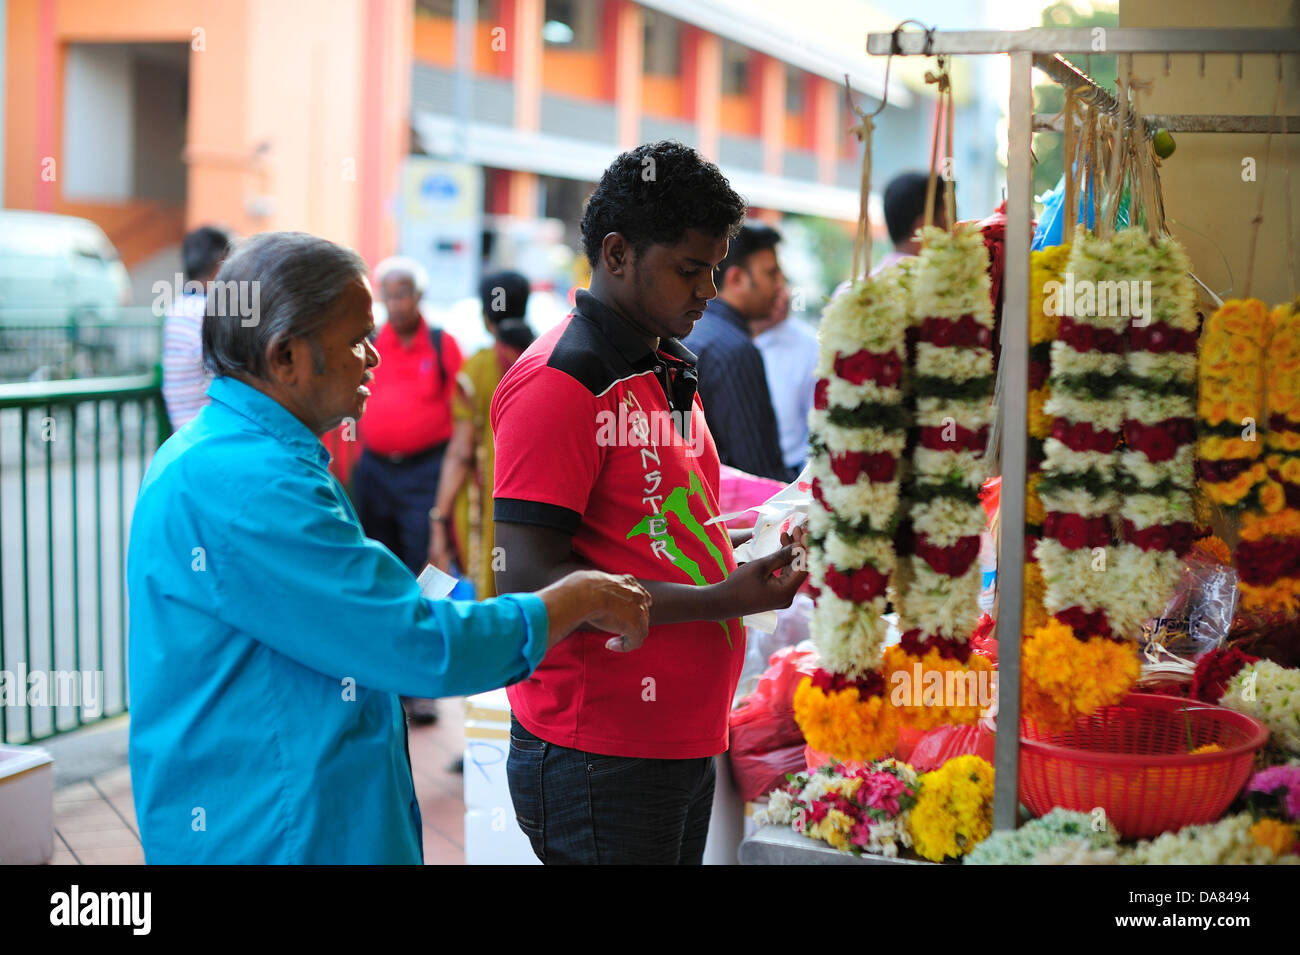 Flower Worker Little India Singapore - Stock Image